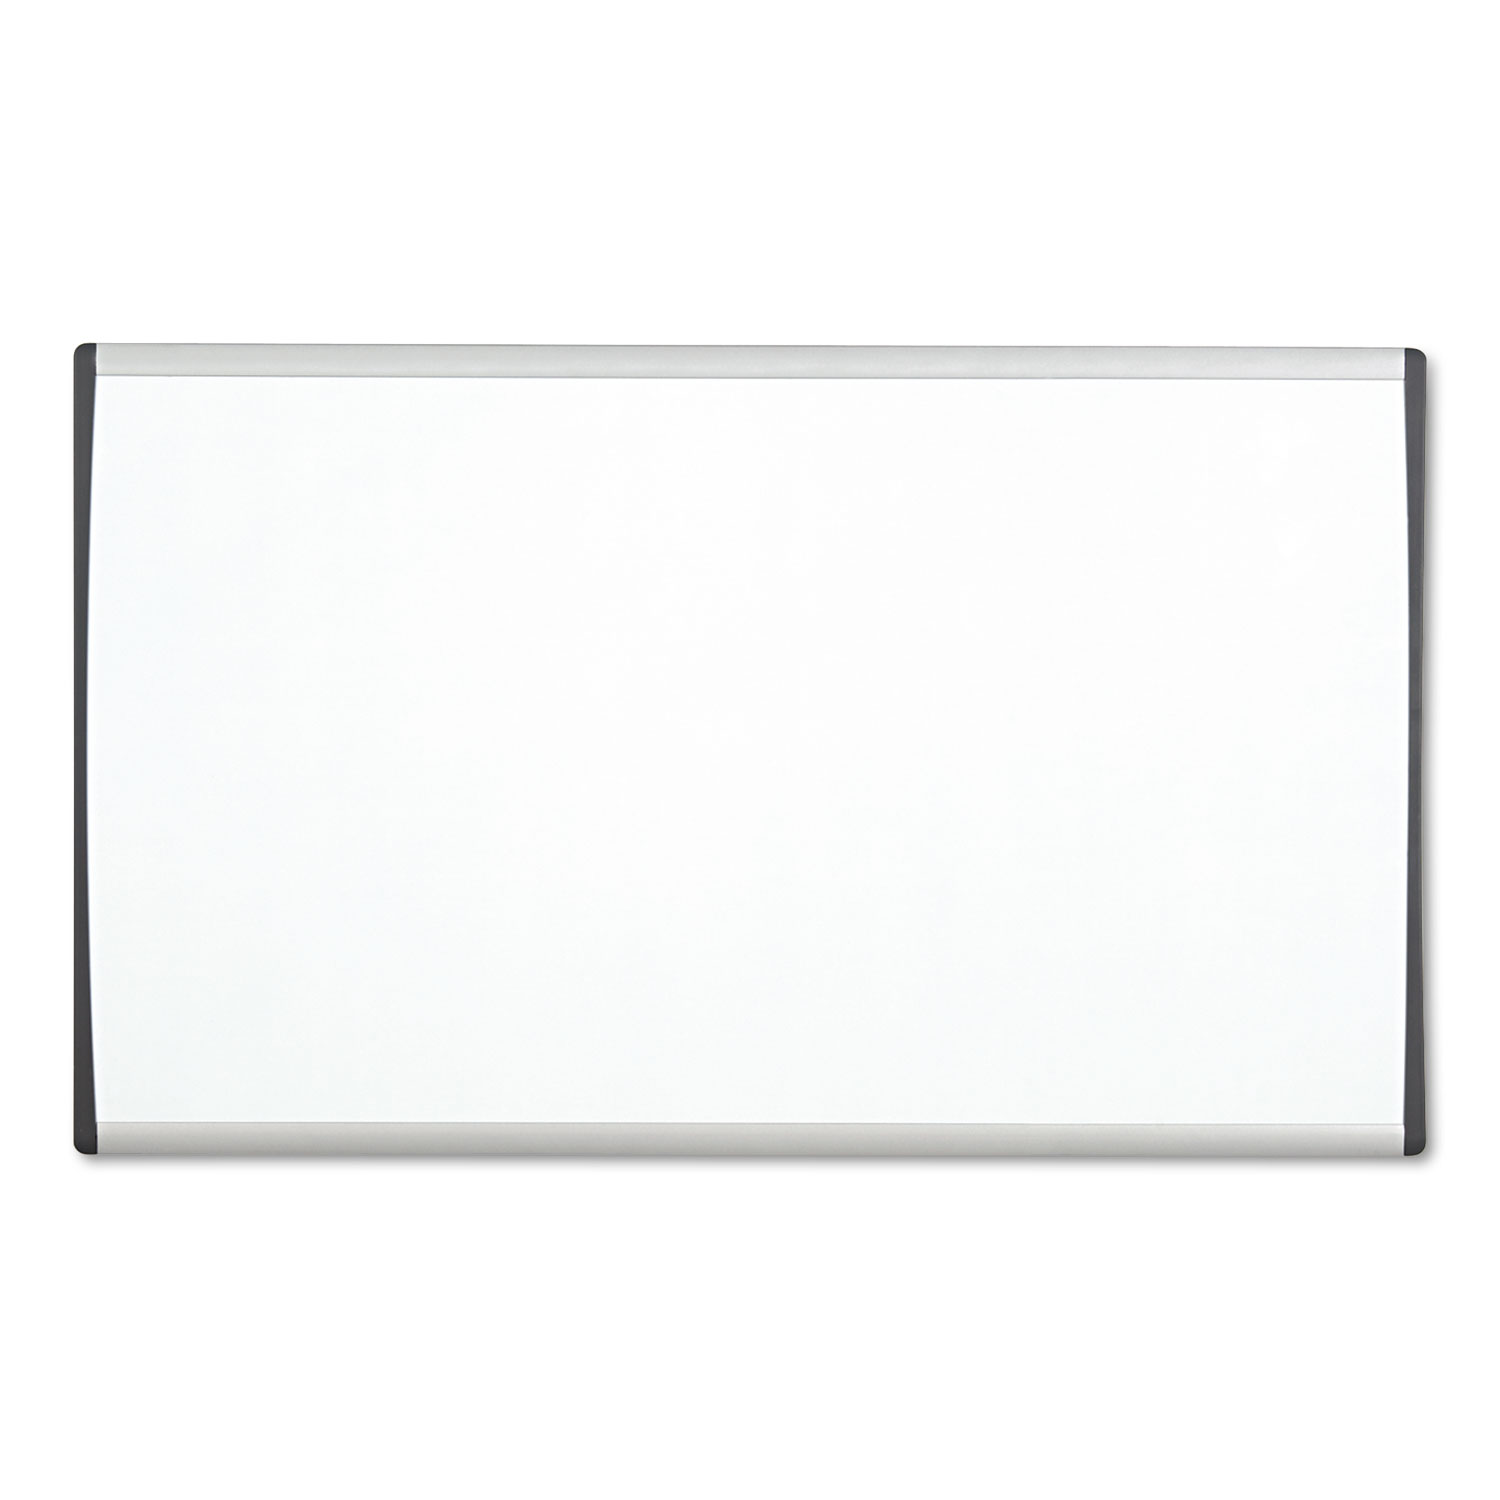 Picture of Magnetic Dry-Erase Board, Steel, 14 x 24, White Surface, Silver Aluminum Frame